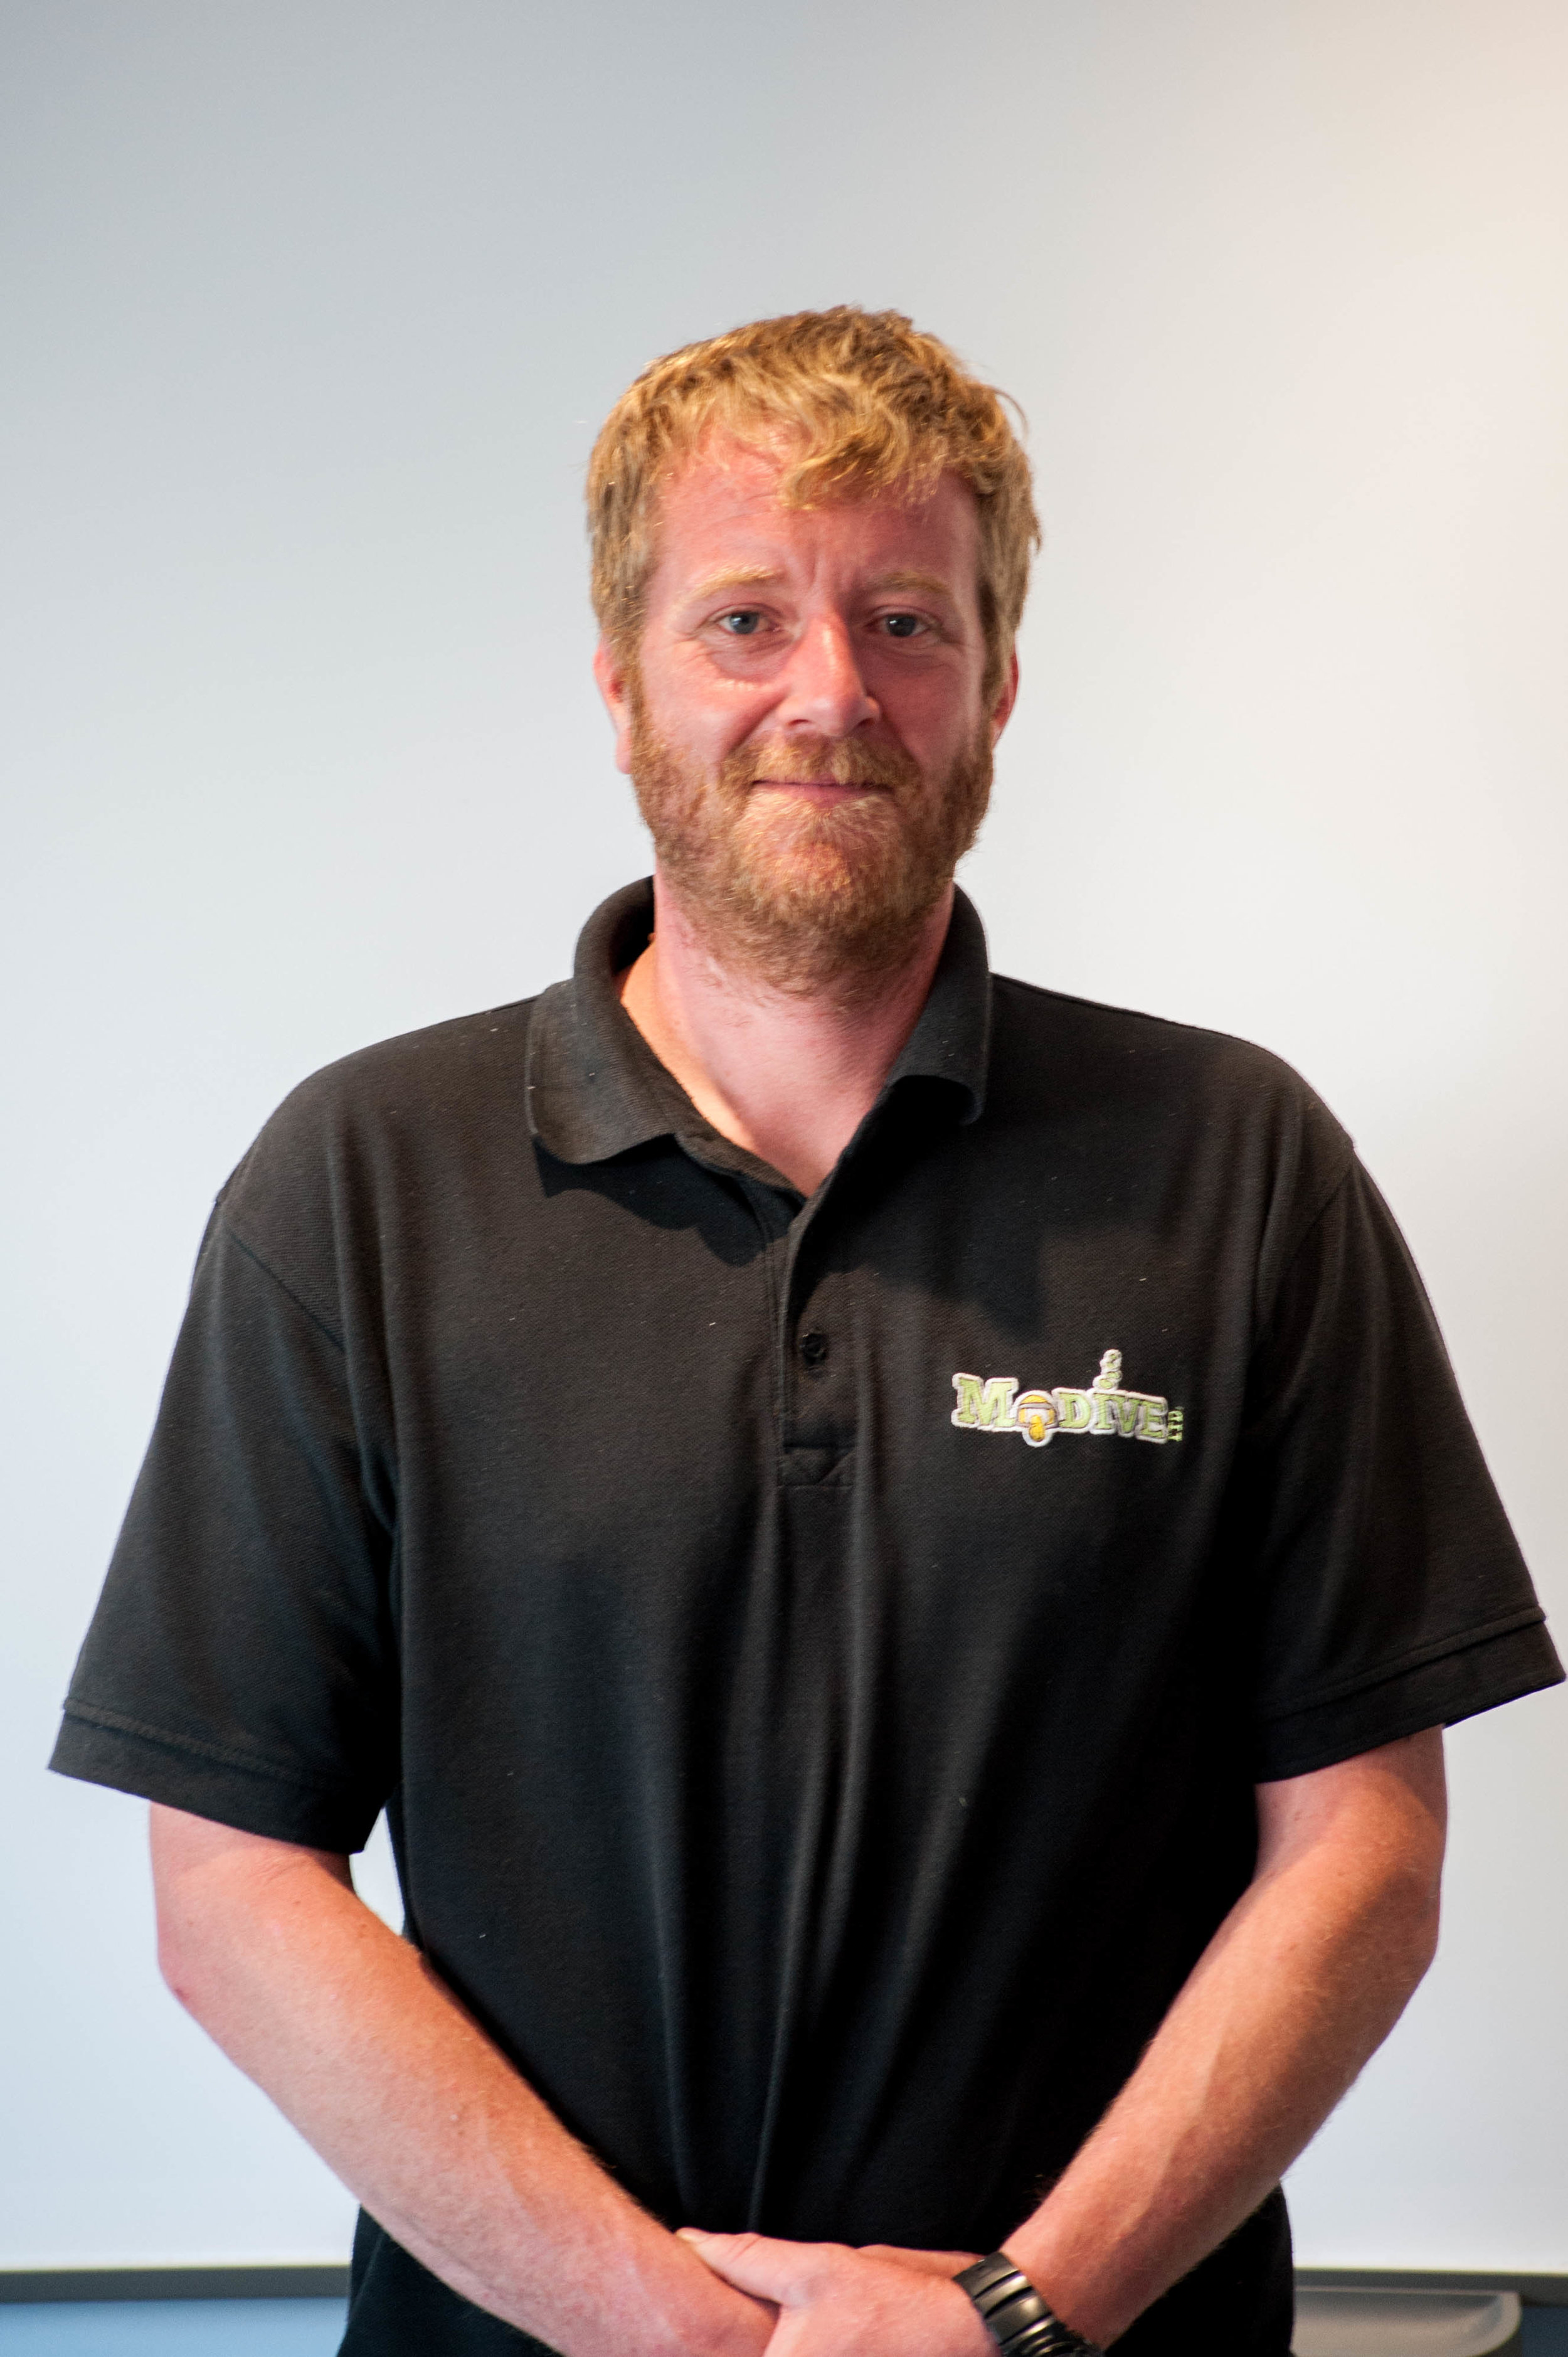 Ian Simpson - Supervisor/DiverQualifications: - HSE scuba divingHSE surface supplied divingHSE surface supplied top up divingEmergency first responseFirst aid at work02 providerBasic sea survivalIOSH working safelyPersonal survival techniquesBasic sea survivalROSPA COSHHROSPA manual handlingROSPA risk assessmentsADC Supervisor